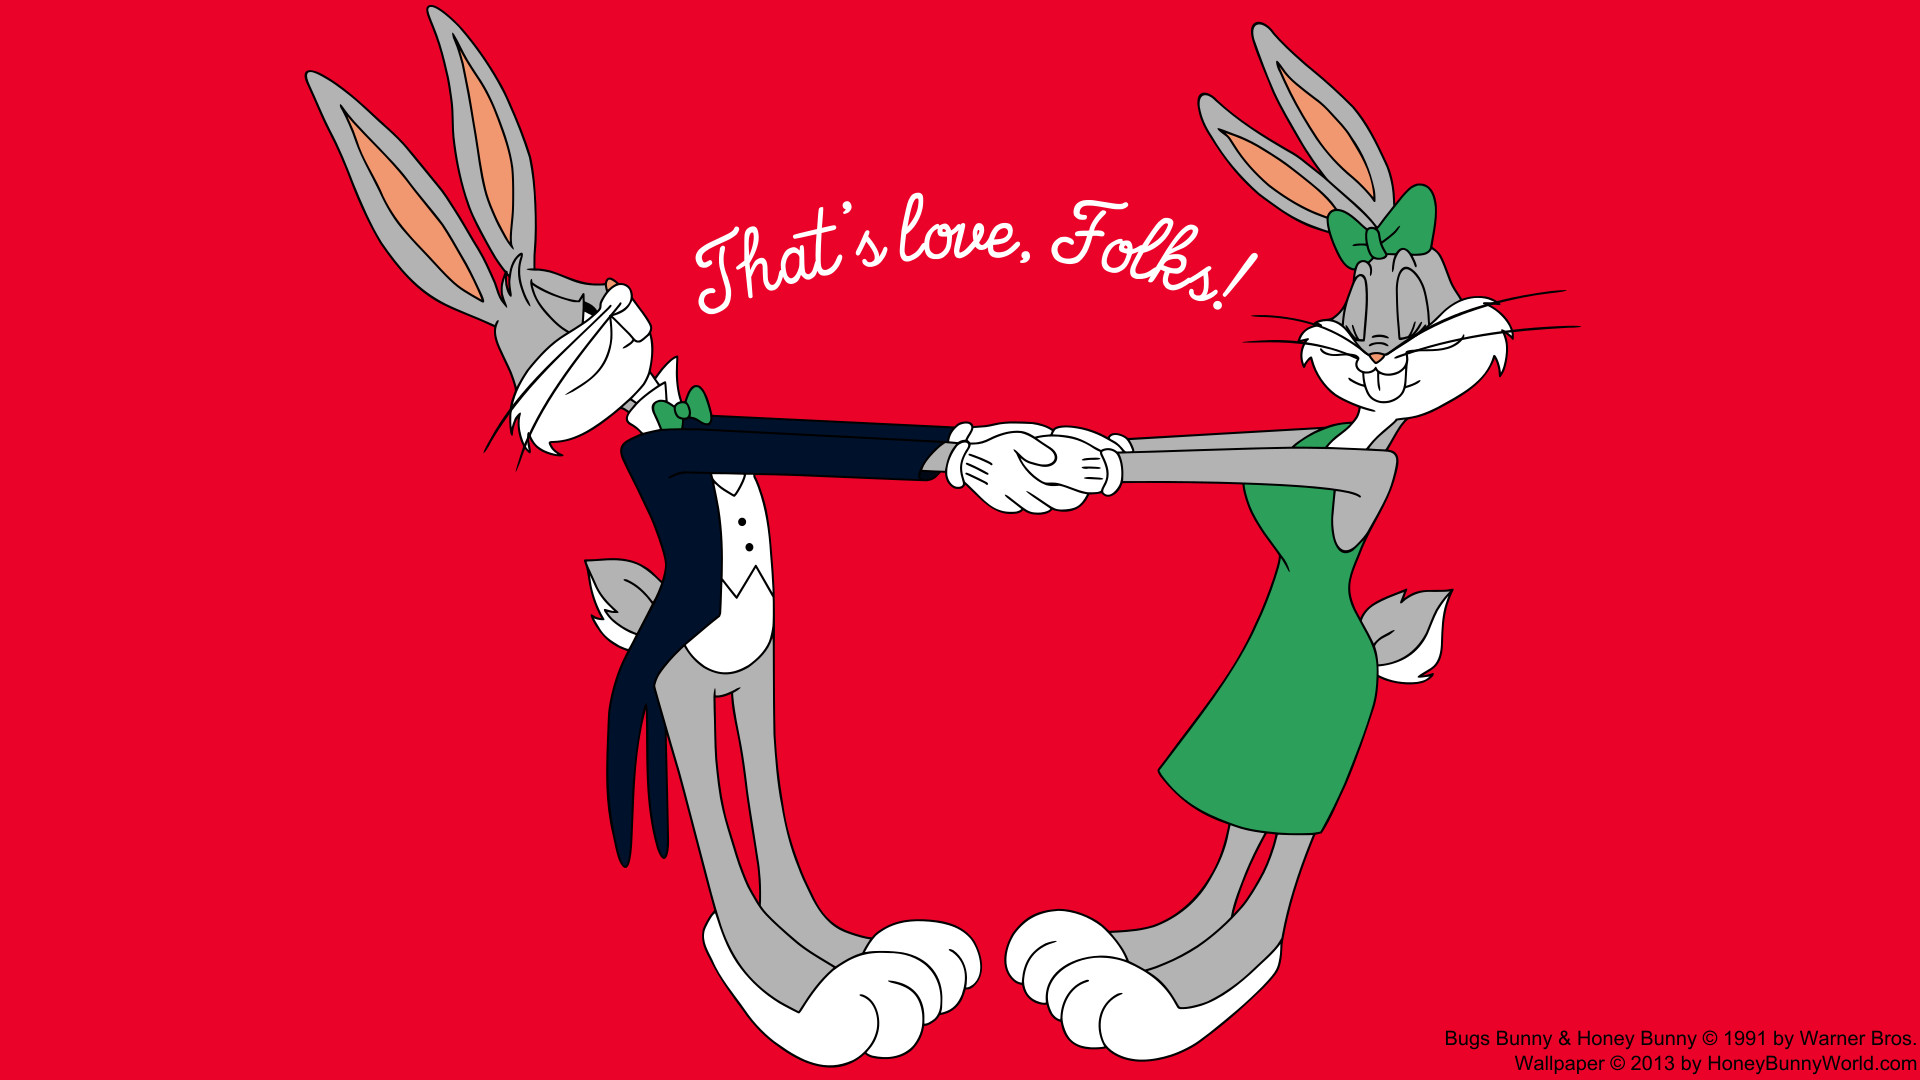 Res: 1920x1080, Everybunny loves some bunny, and Bugs Bunny loves Honey Bunny! And in this  wallpaper you can see how sincere and true their love is.